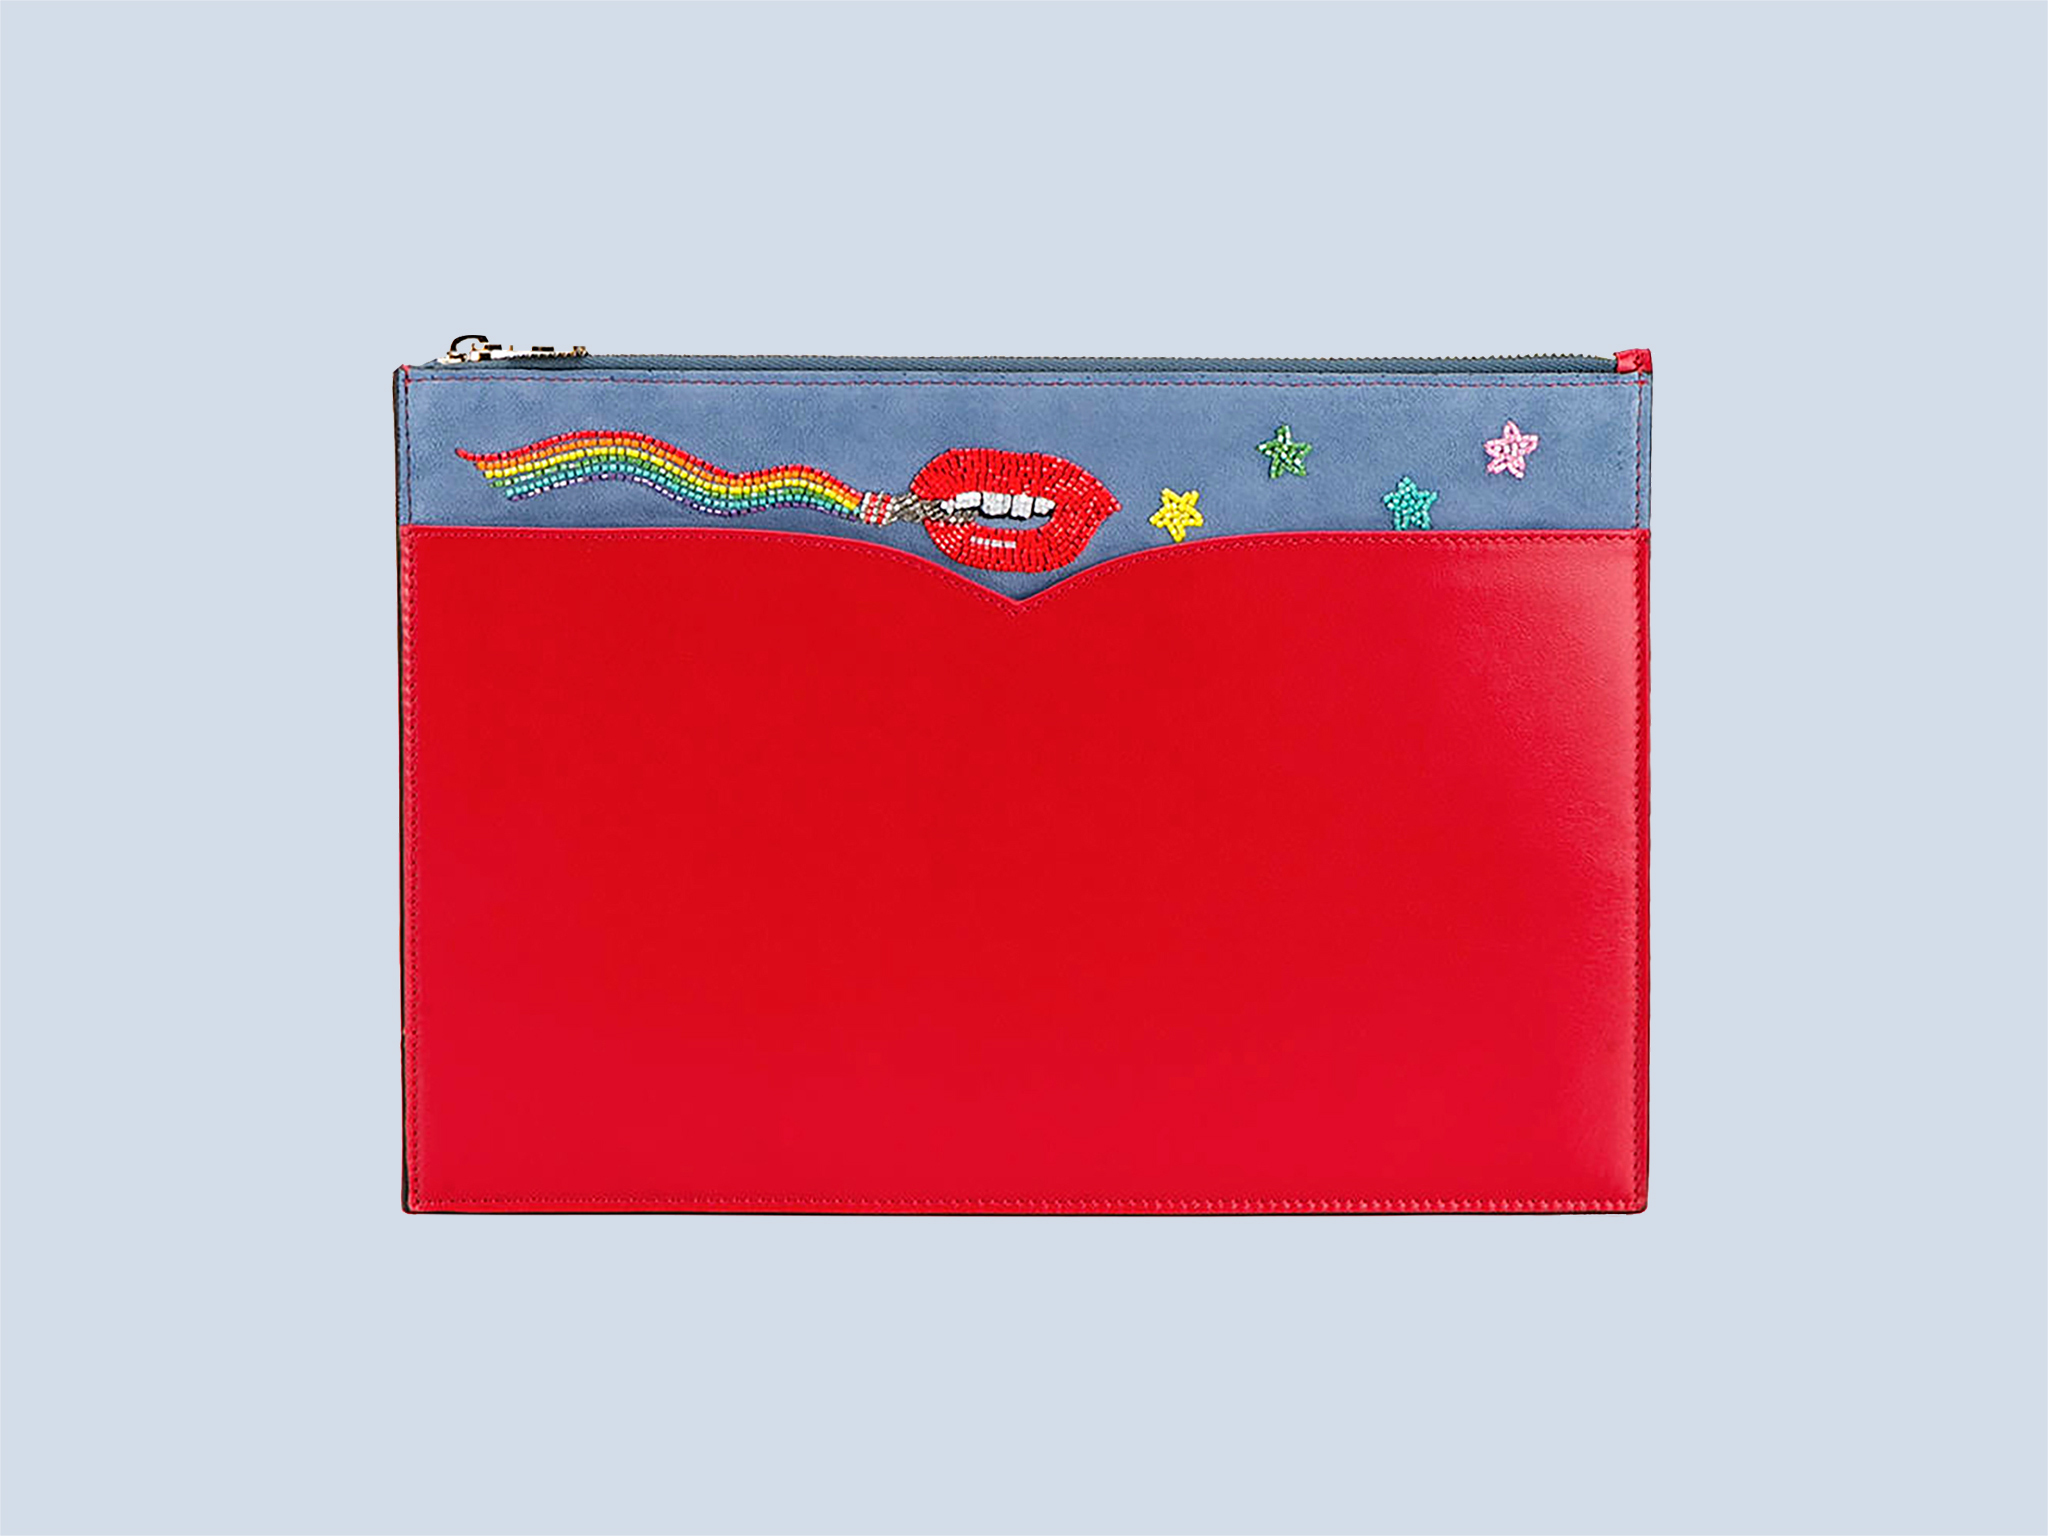 Smoking Lips Beaded Clutch, Valentine's Day gifts for her